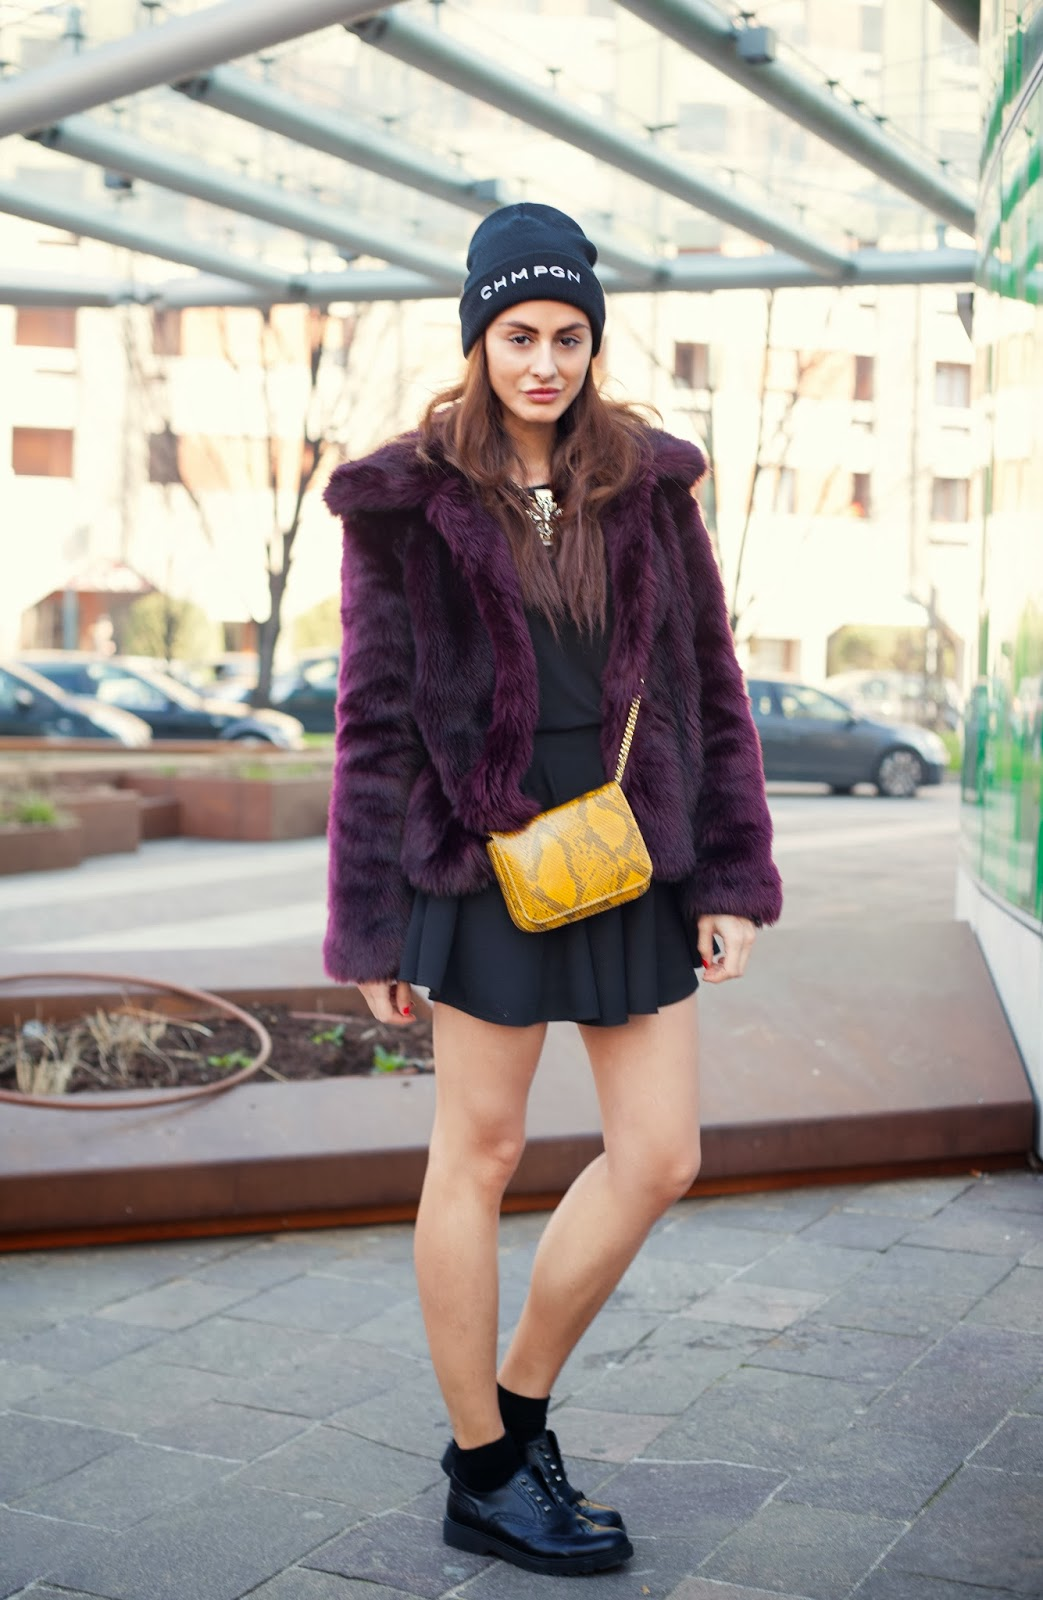 TREND Fashionistas wearing PREMIÈRE Beanies - OOTD Magazine 11